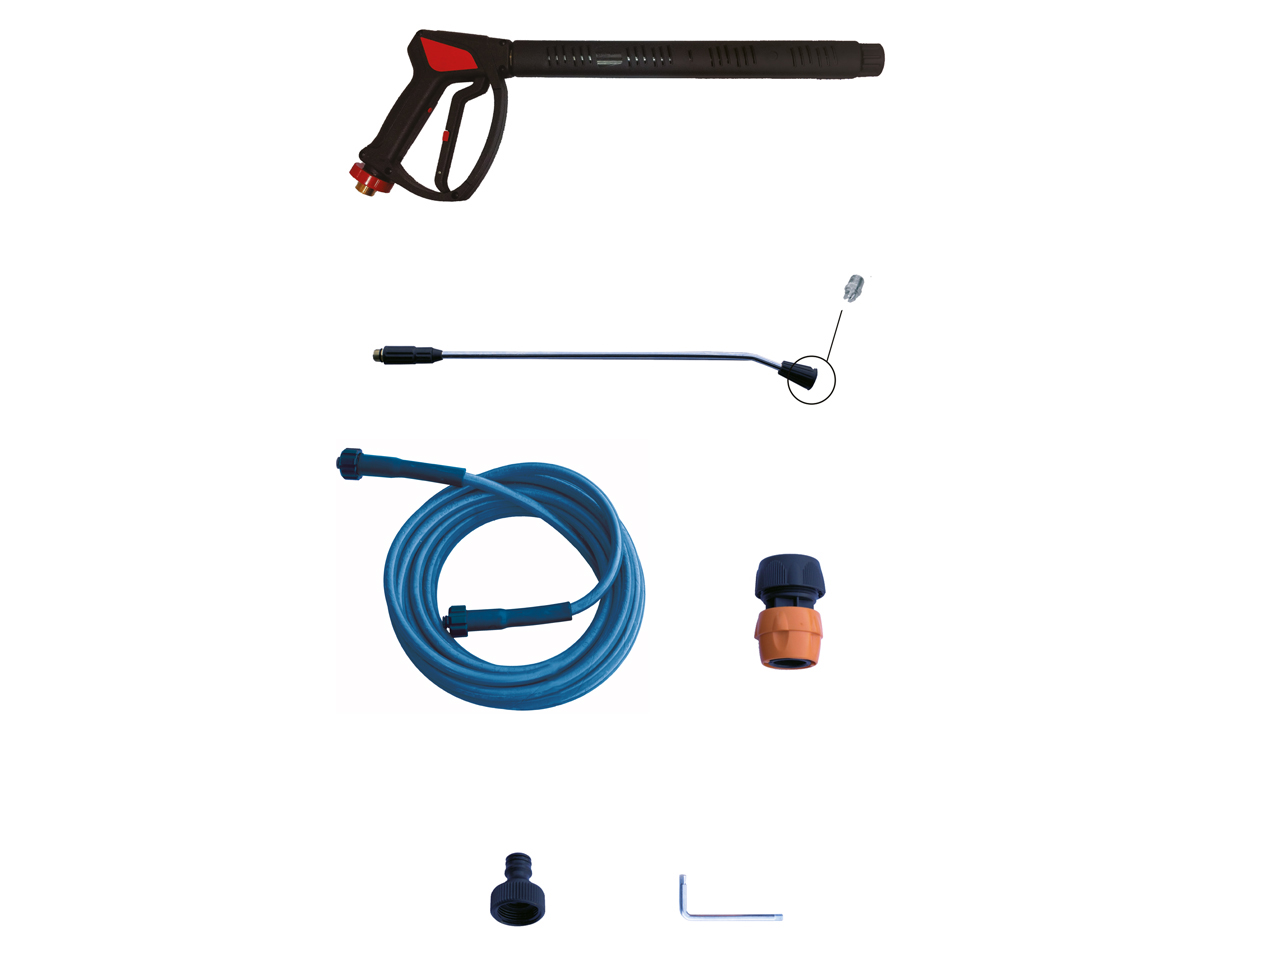 IDROPULITRICI STAZIONARIE PROFESSIONALI AD ACQUA FREDDA PROFESSIONAL STATIONARY COLD WATER HIGH PRESSURE CLEANERS.jpg